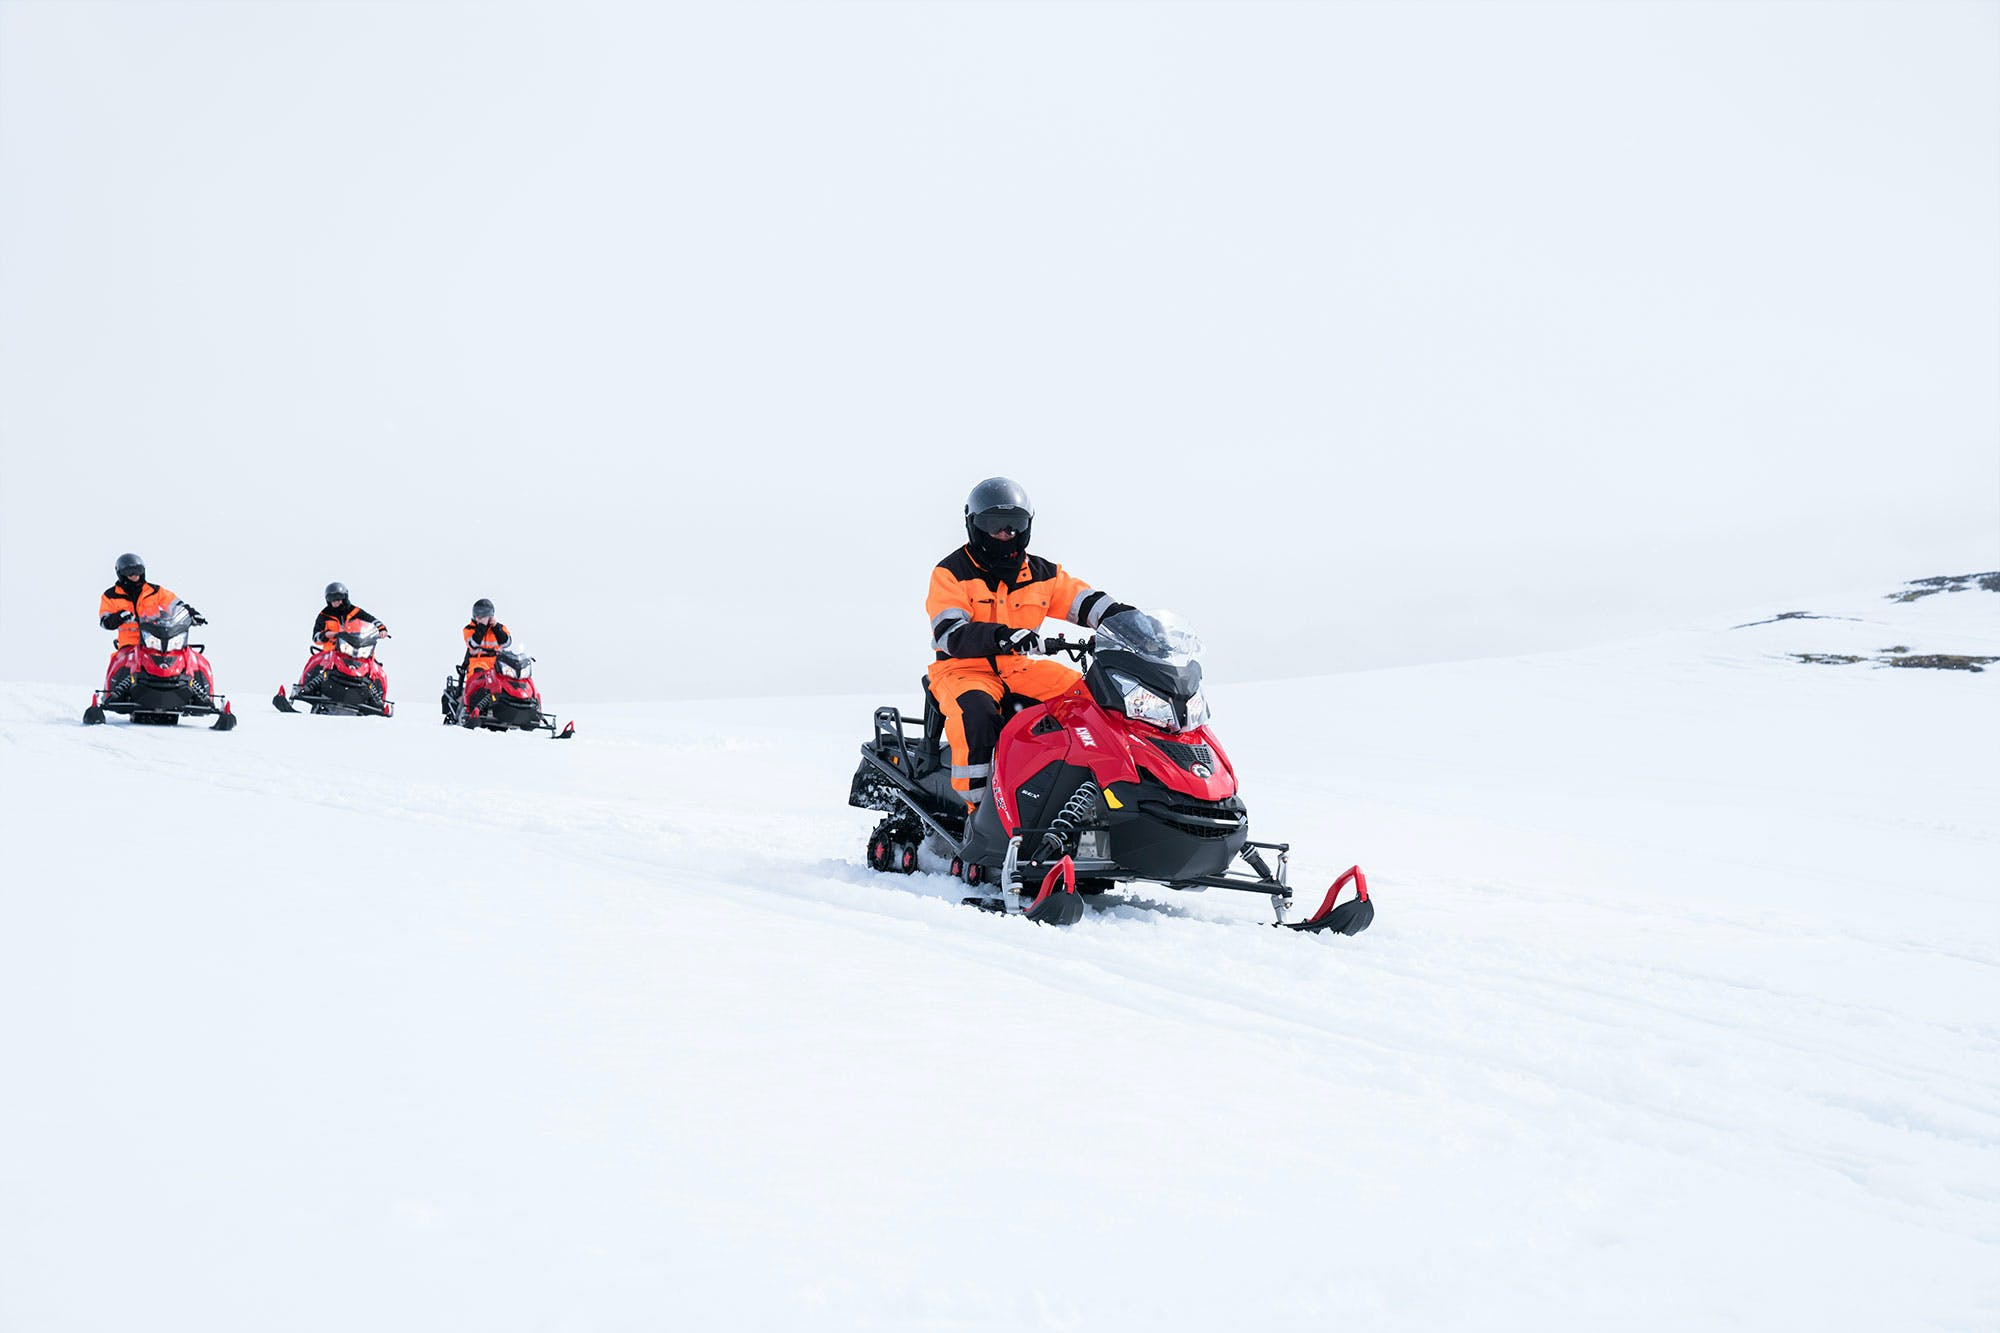 The Golden Circle, Monster Truck & Snowmobiling